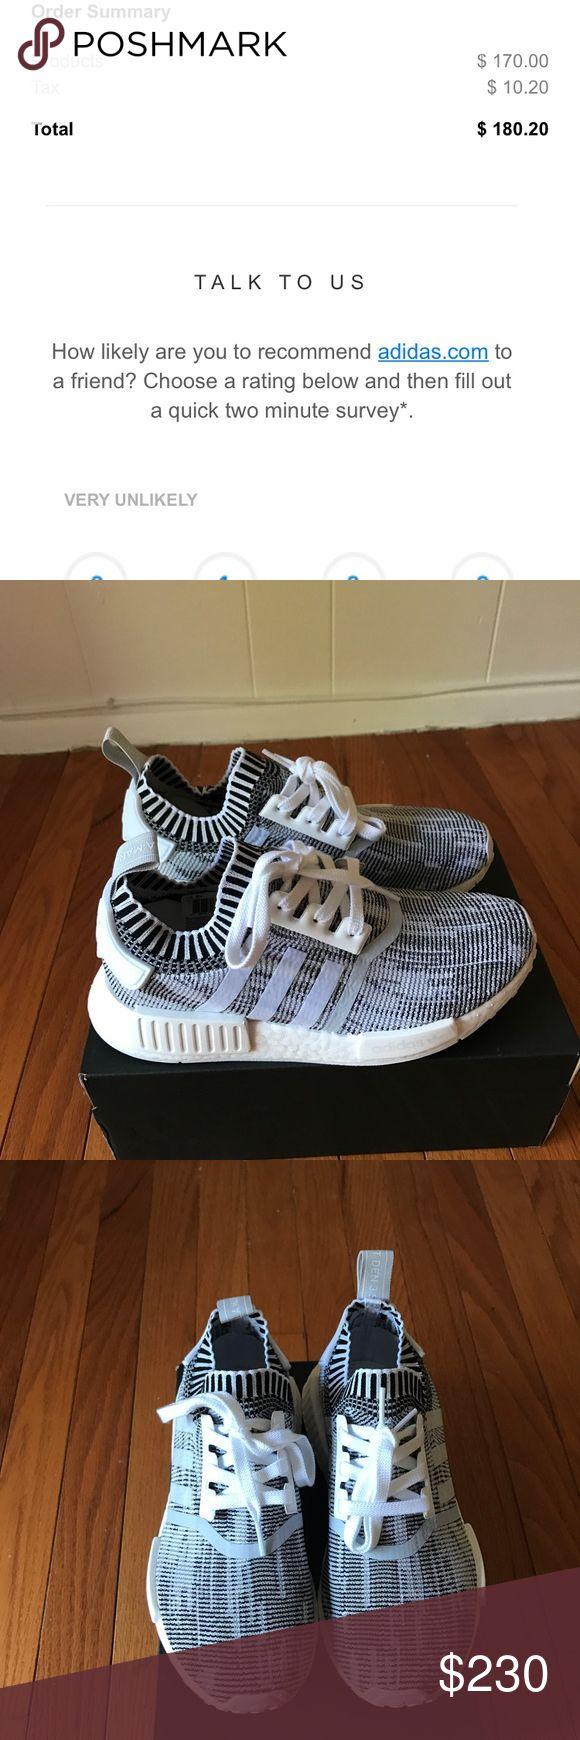 Adidas NMD R1 PK New in box size 5.5 in men which is 7 in women 100% authentic price is firm I will keep if it doesn't sell and no trades Adidas Shoes Athletic Shoes